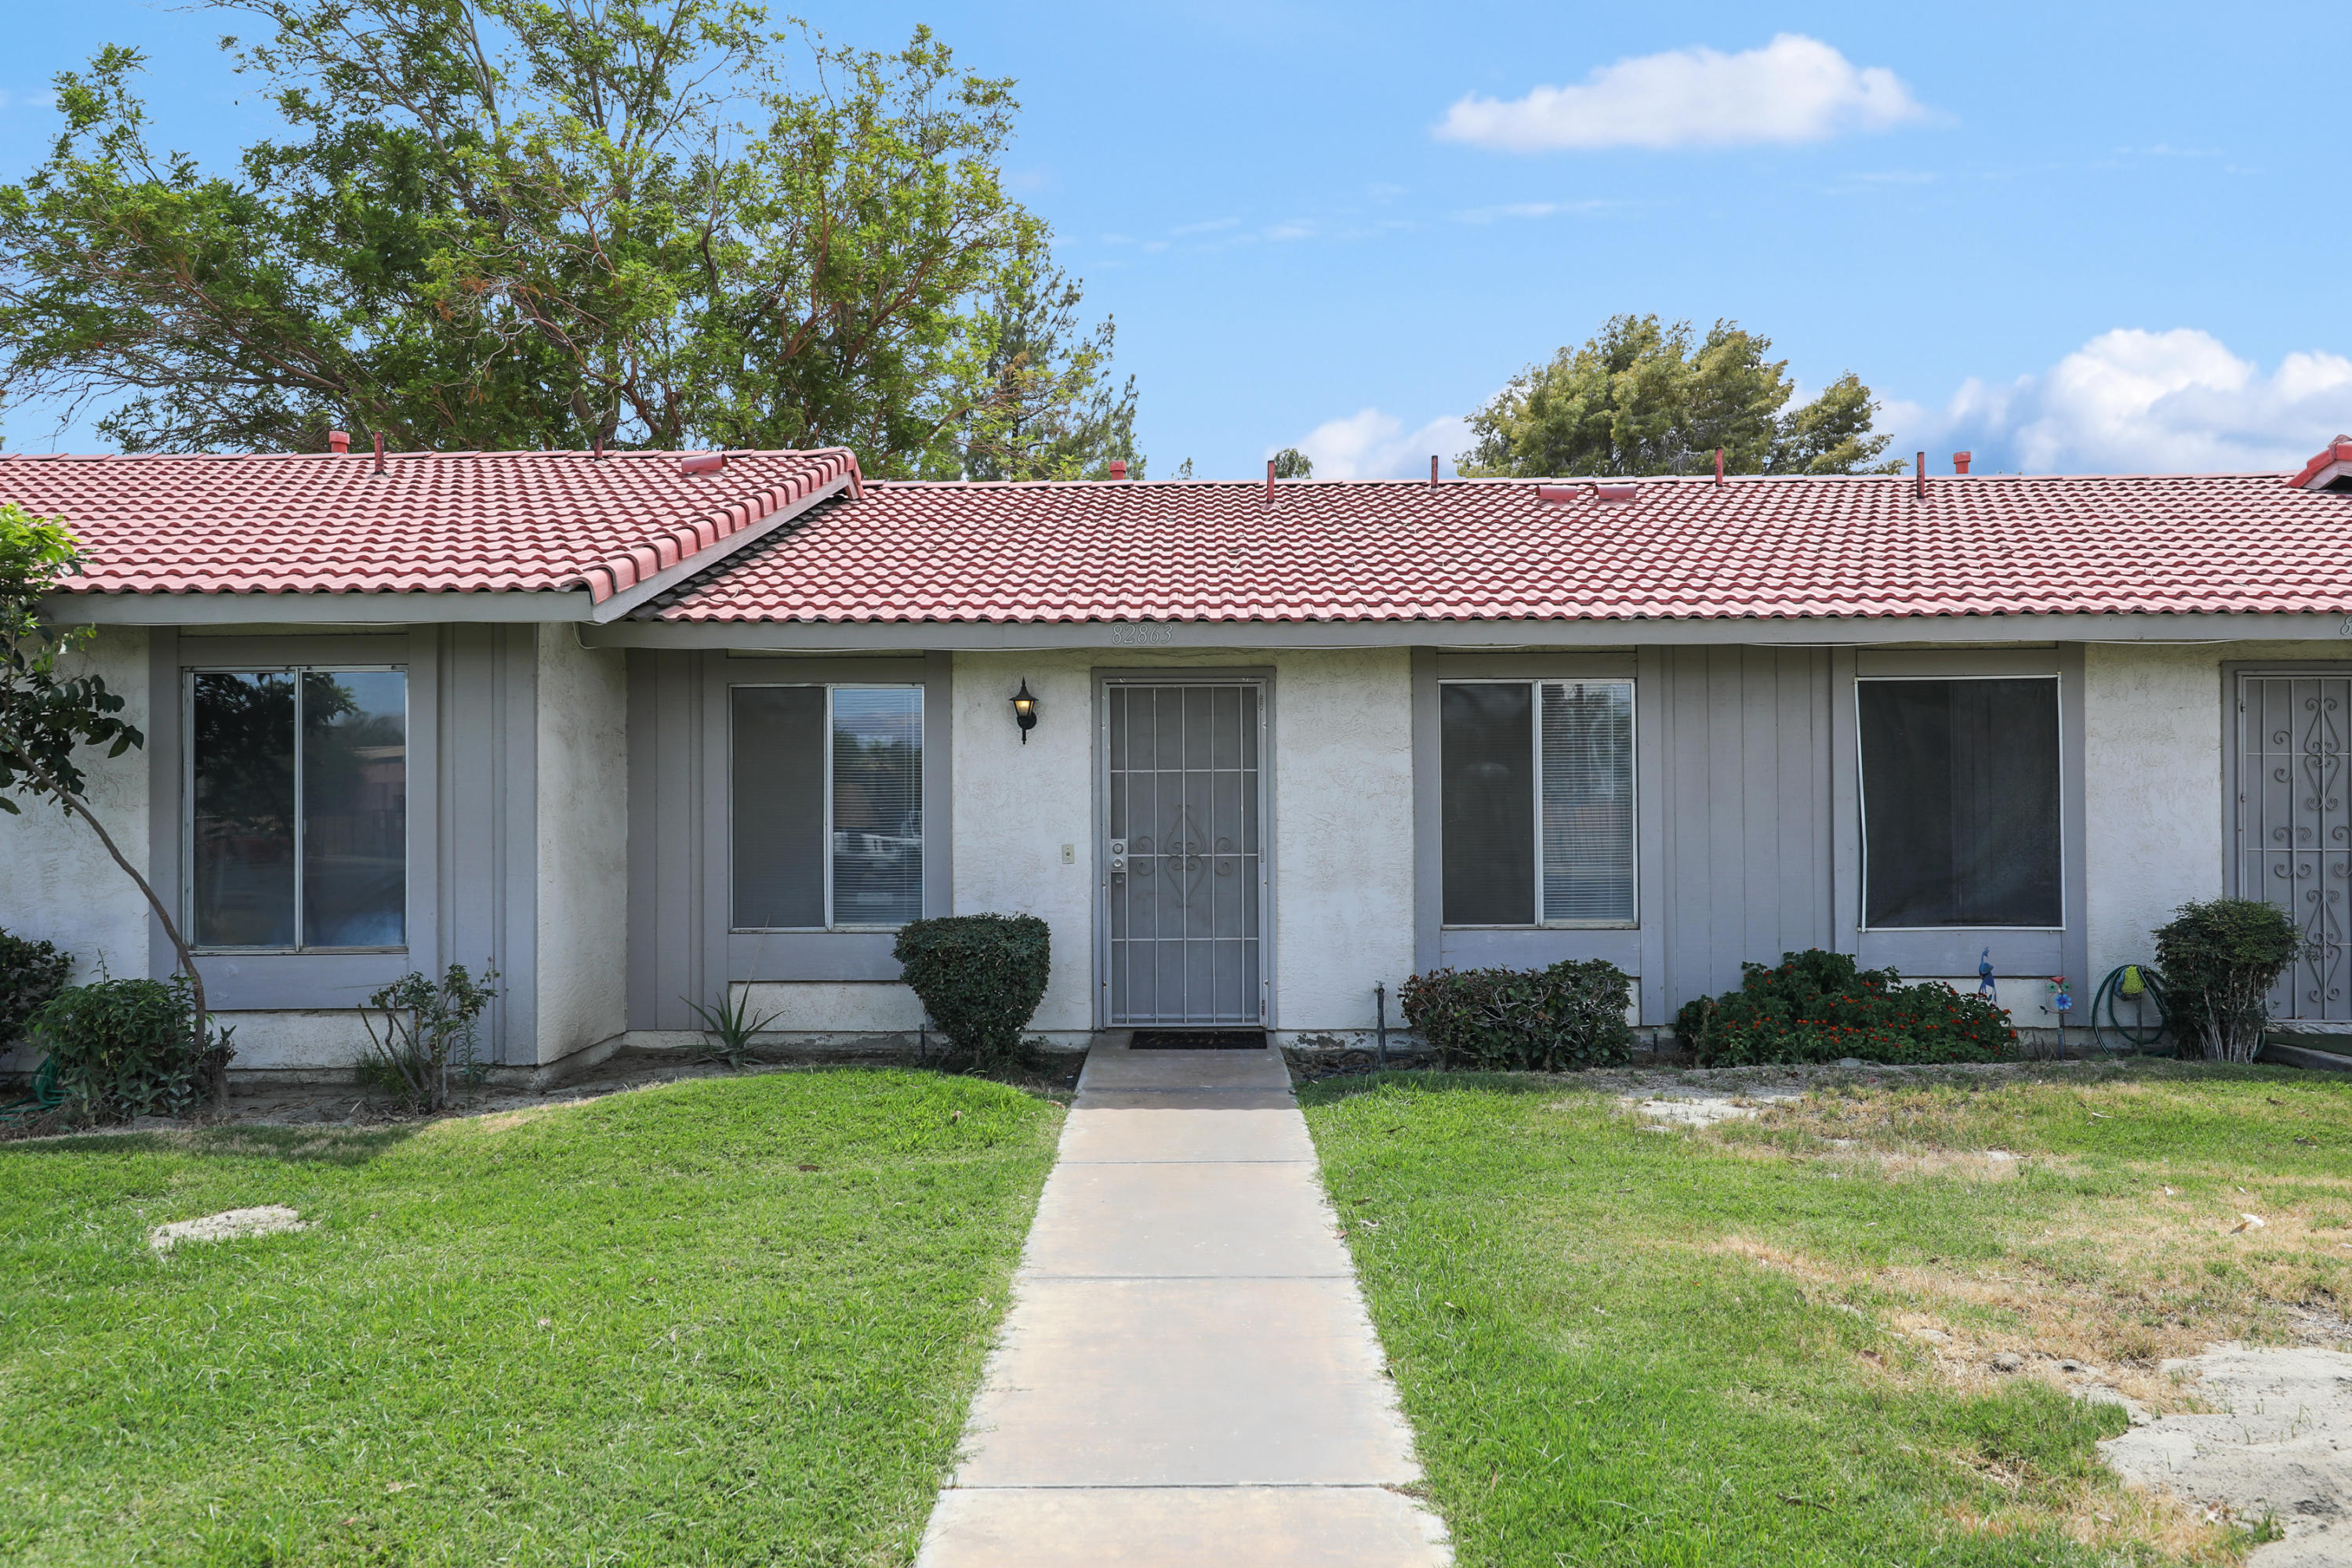 Great furnished investment opportunity for a short term rental or a great starter condo with good entry pricing all within the gated community of Indian Palms. This unit overlooks the refreshing pool/spa area and multiple tennis courts. Indian Palms is the prime location for walking to the world famous Coachella and Stagecoach festivals. In addition, you will have the luxury of IID for electricity, which is lower than most cities.  Short term rental income has averaged $40,000 a year in the past several years. Bring all offers.